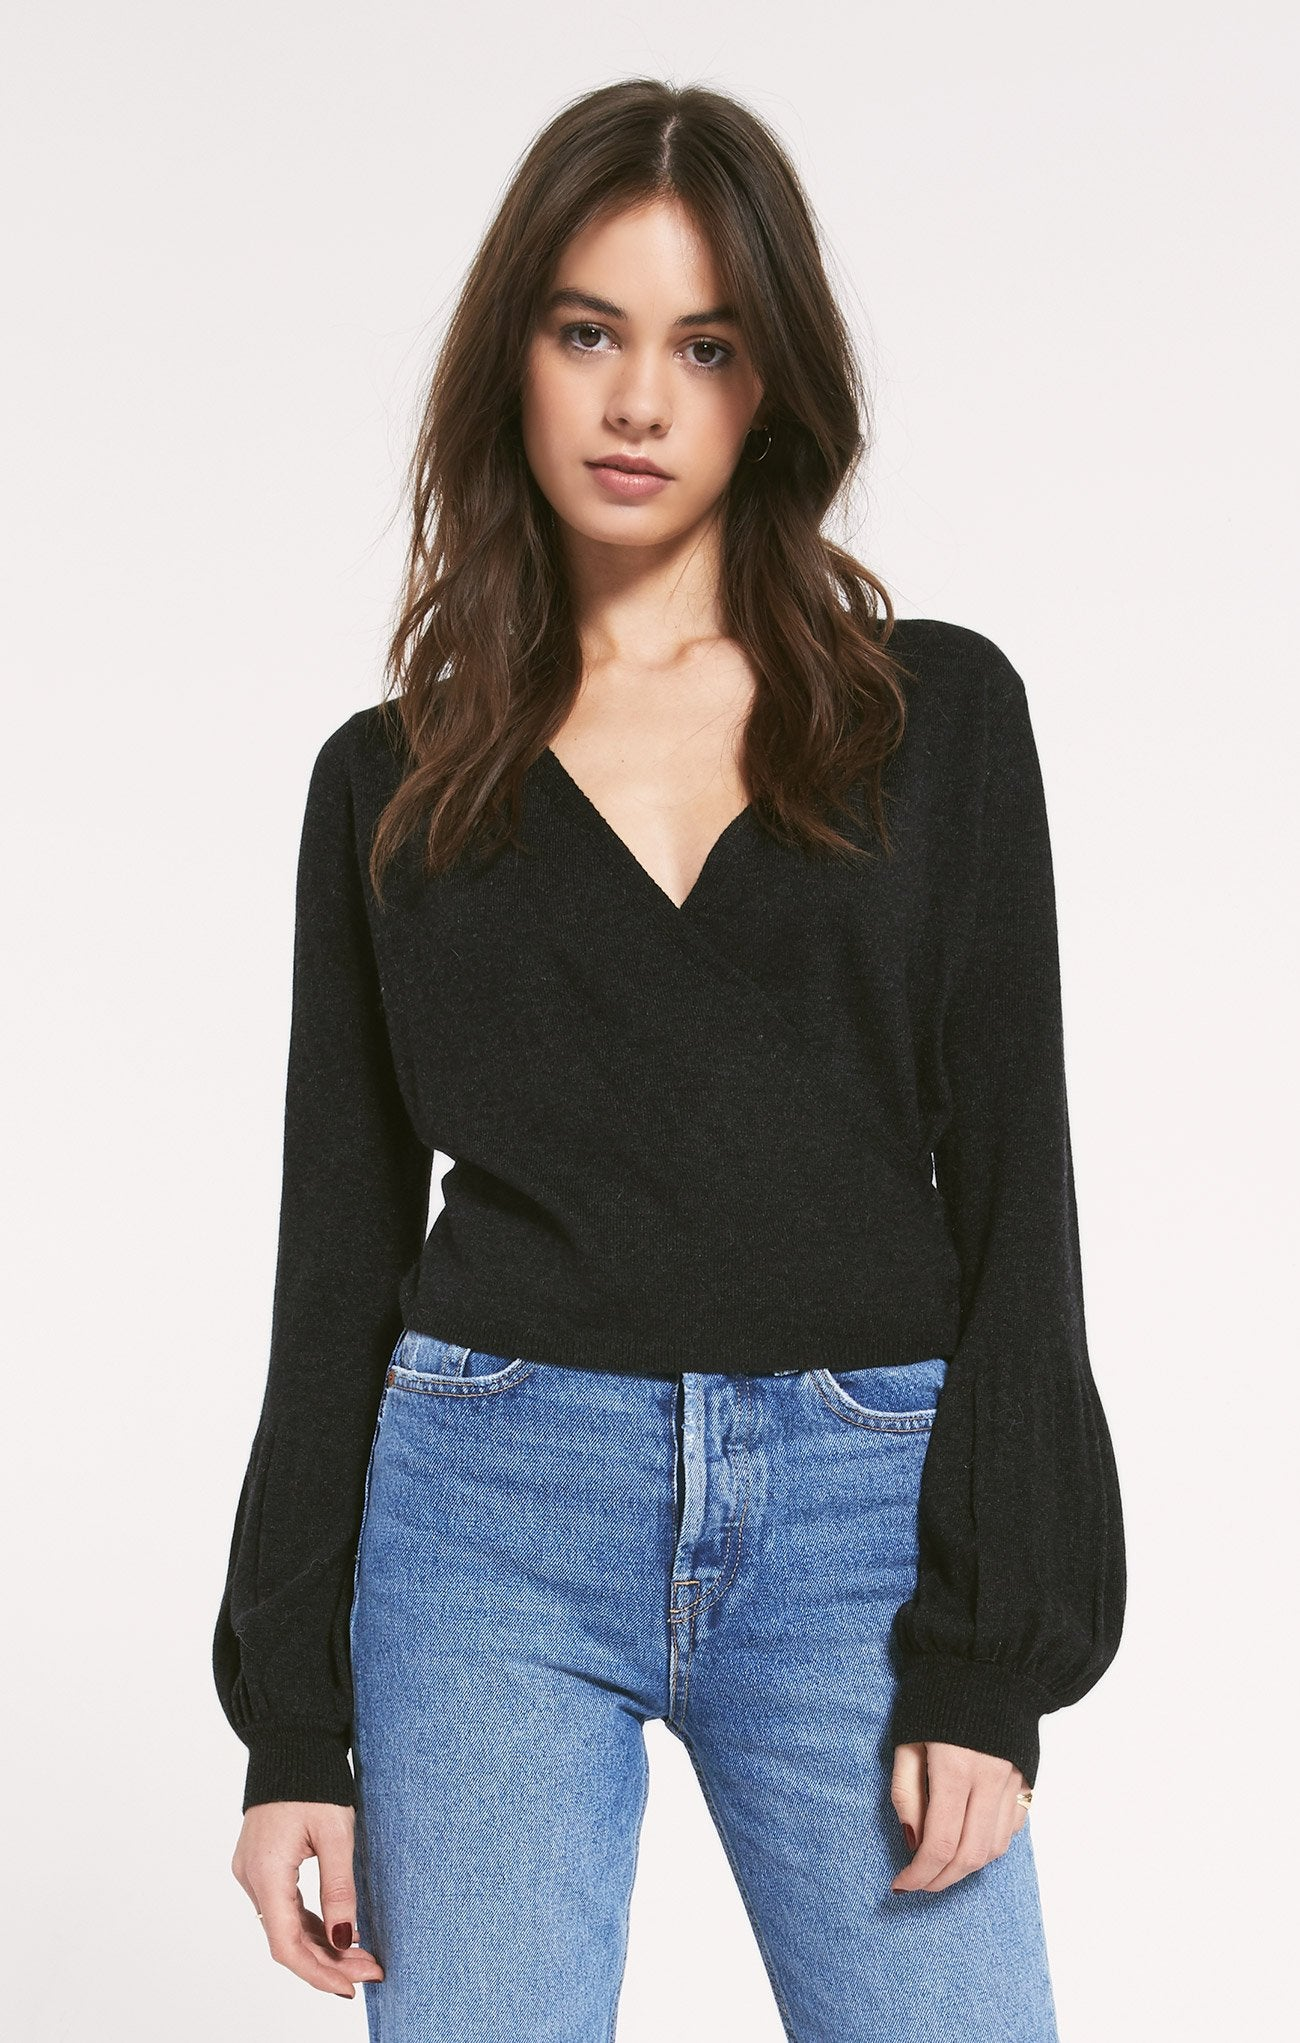 Bricklane Sweater in Heathered Black